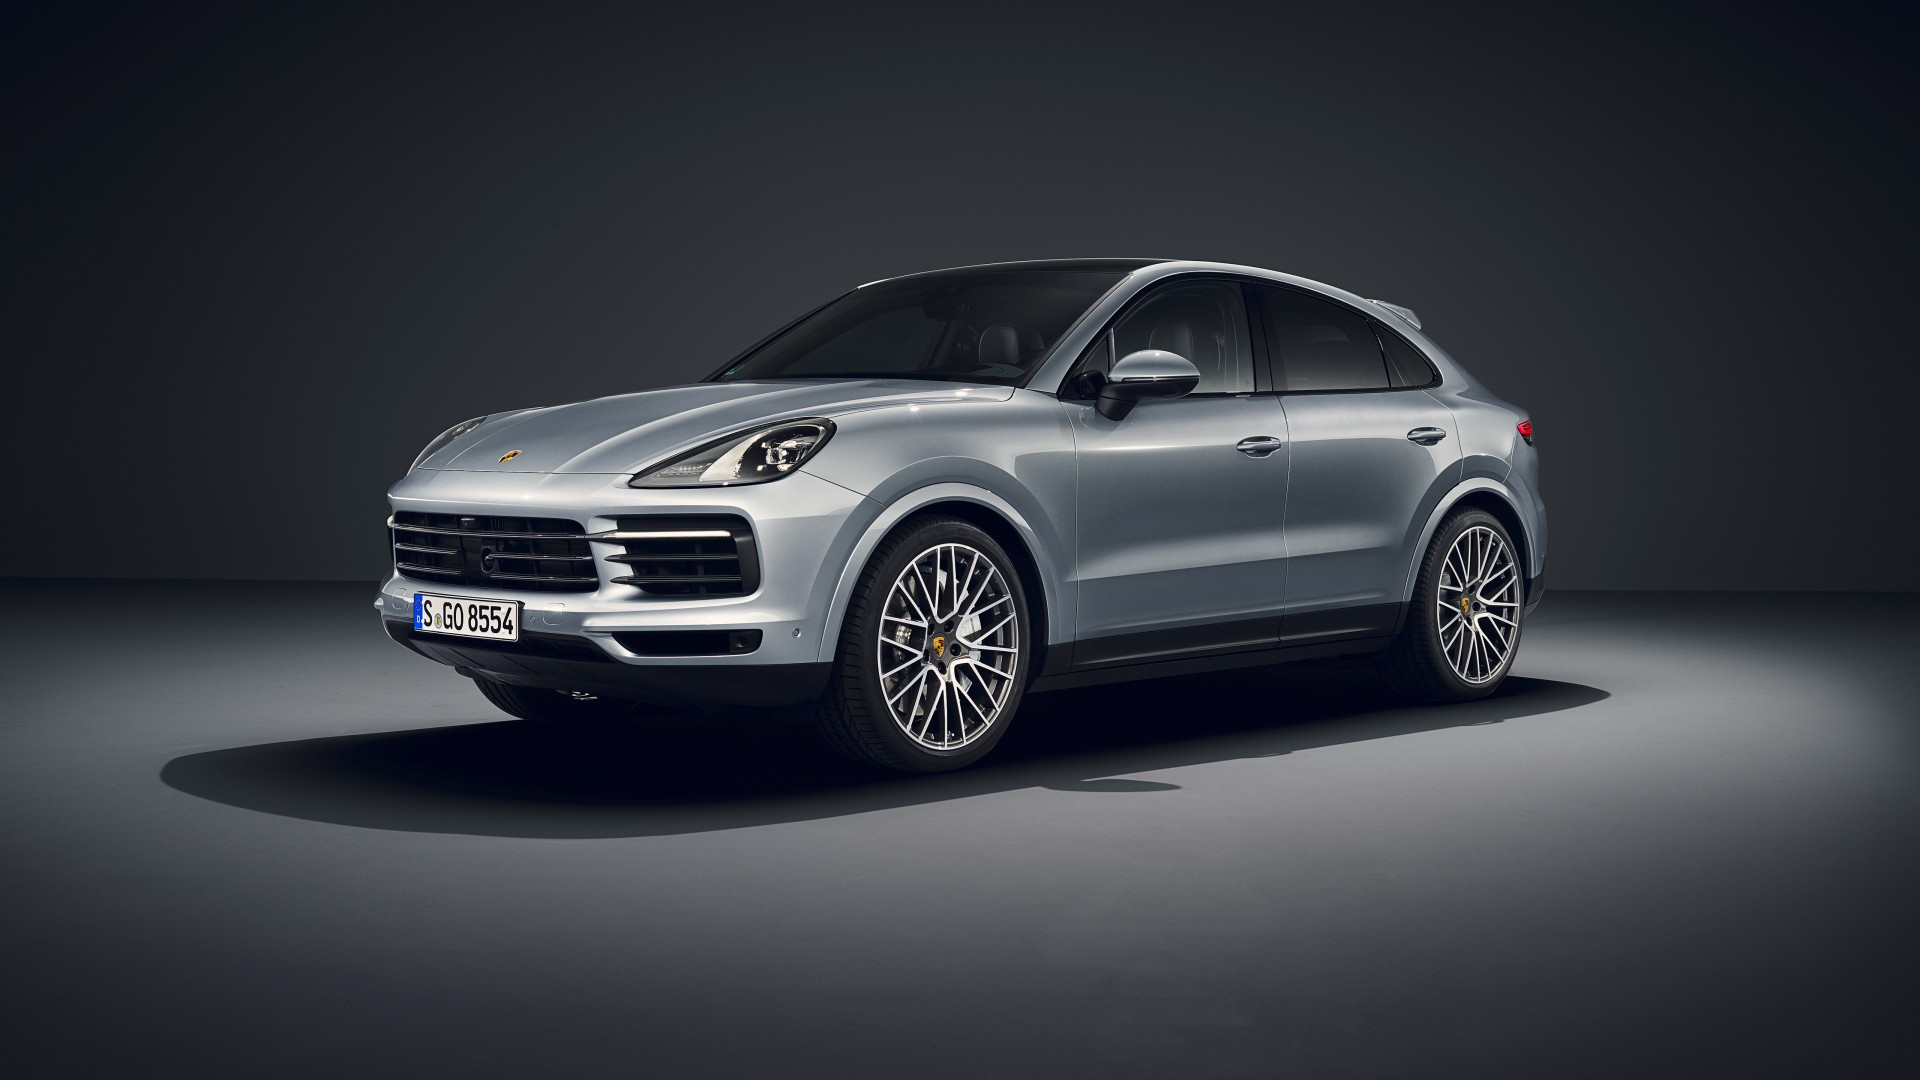 porsche cayenne s coupe 2019 5k wallpaper